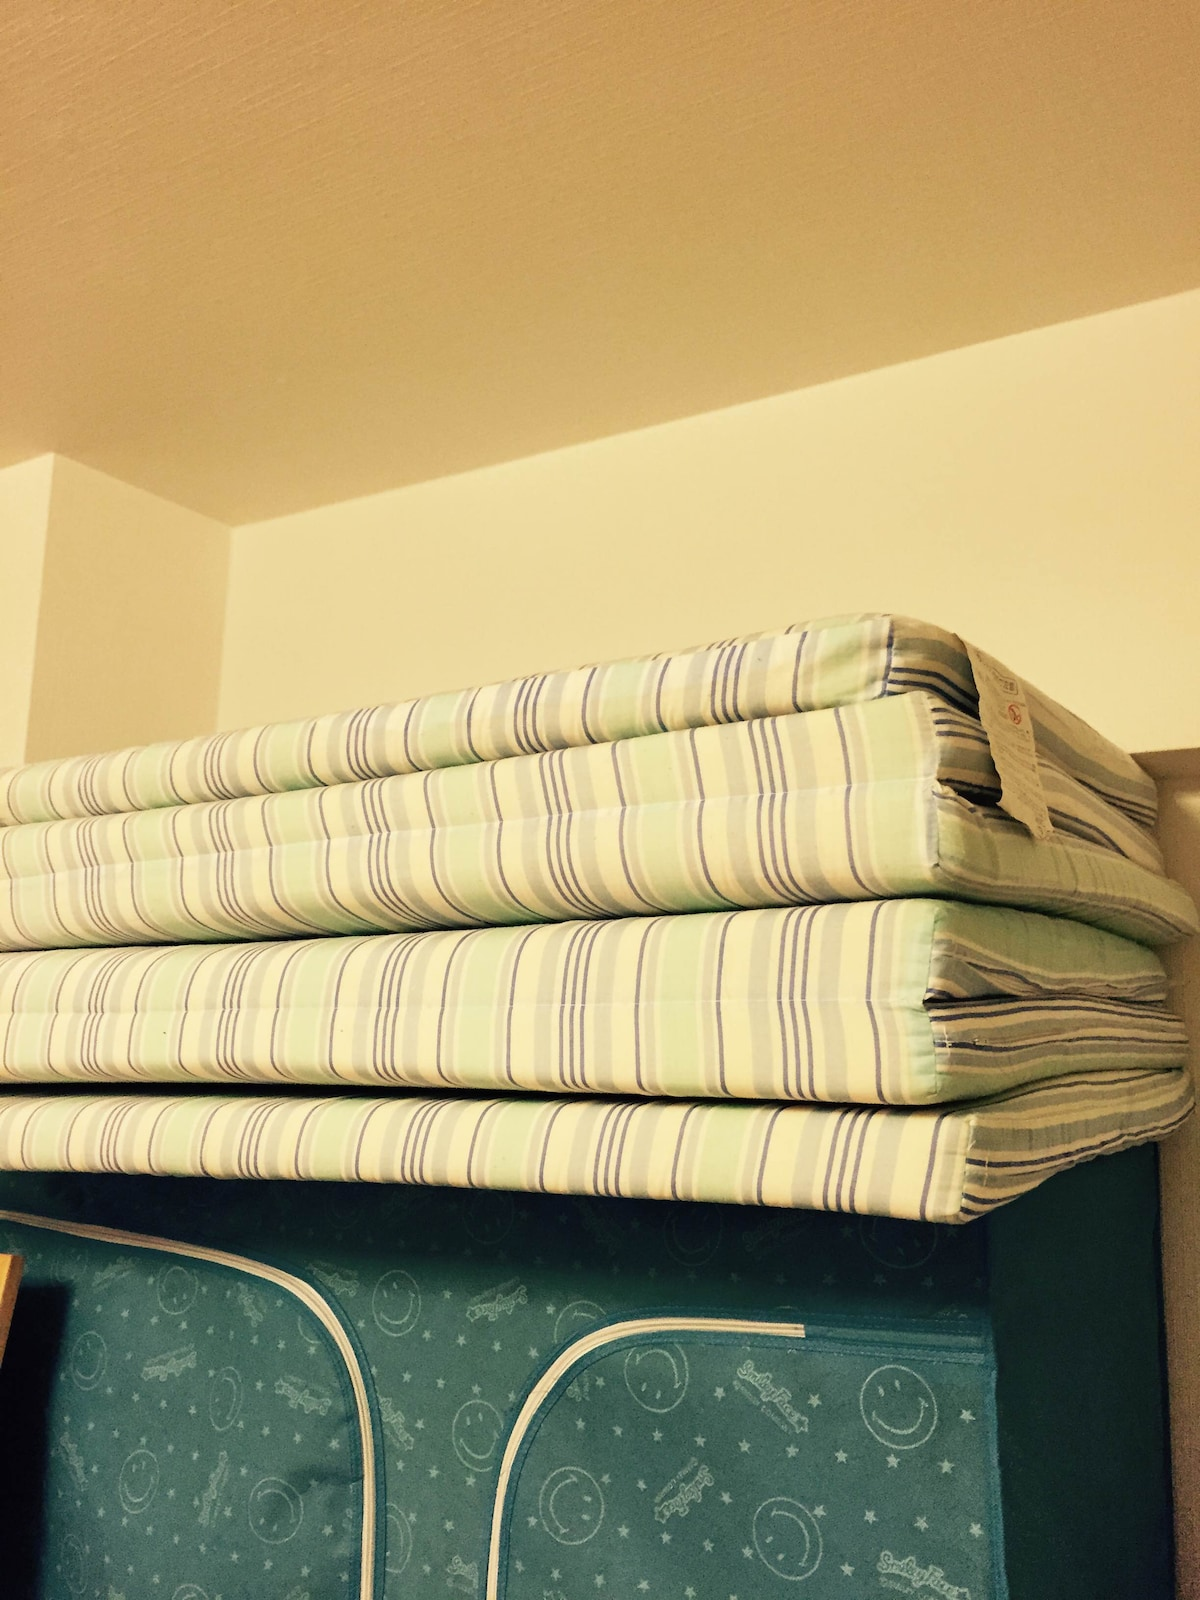 Guests use this mattress on the floor, this is very usual Japanese style! You have a clean sheet on the top!